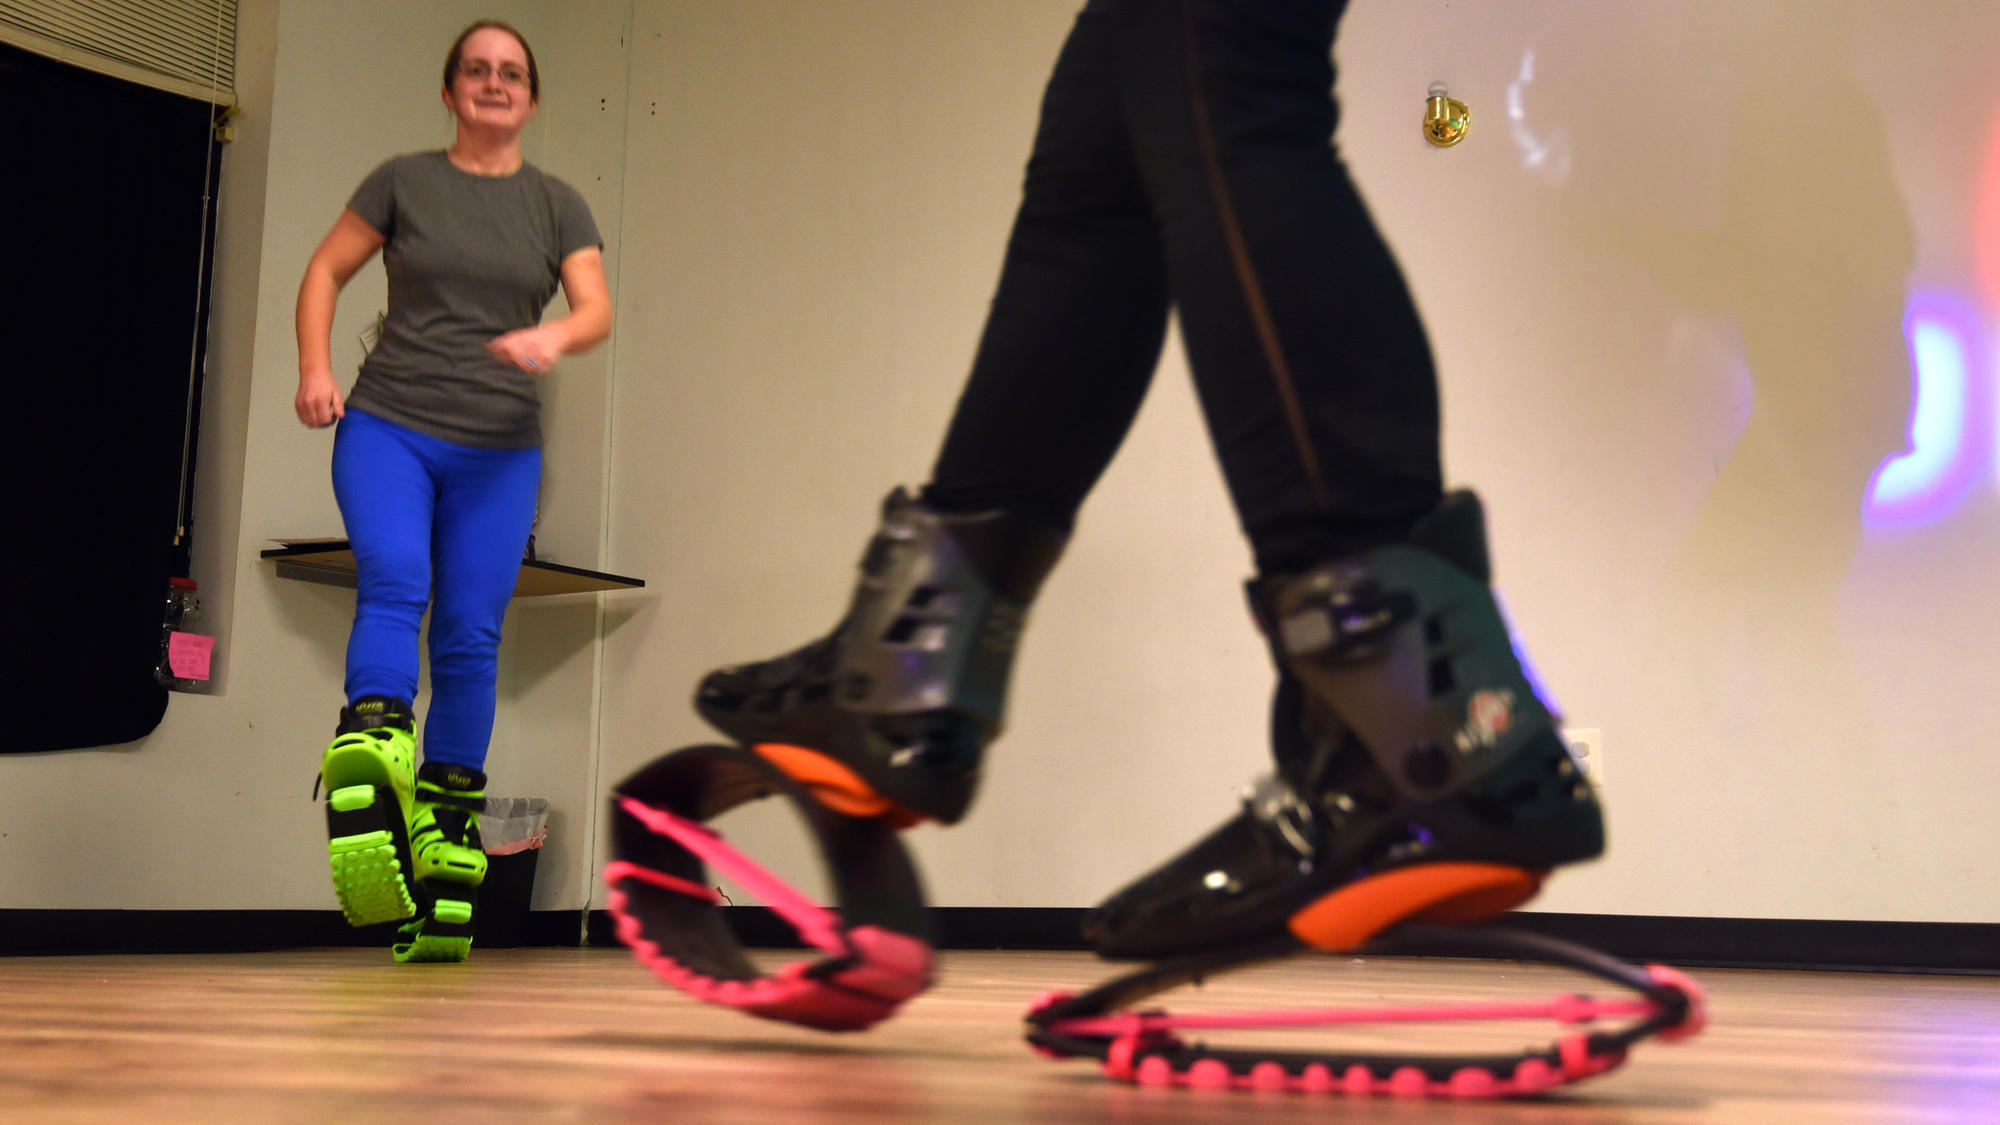 At Abingdon s MWFitness, Kangoo Jumps takes workouts to new heights -  Baltimore Sun 9caa8ffc4f3